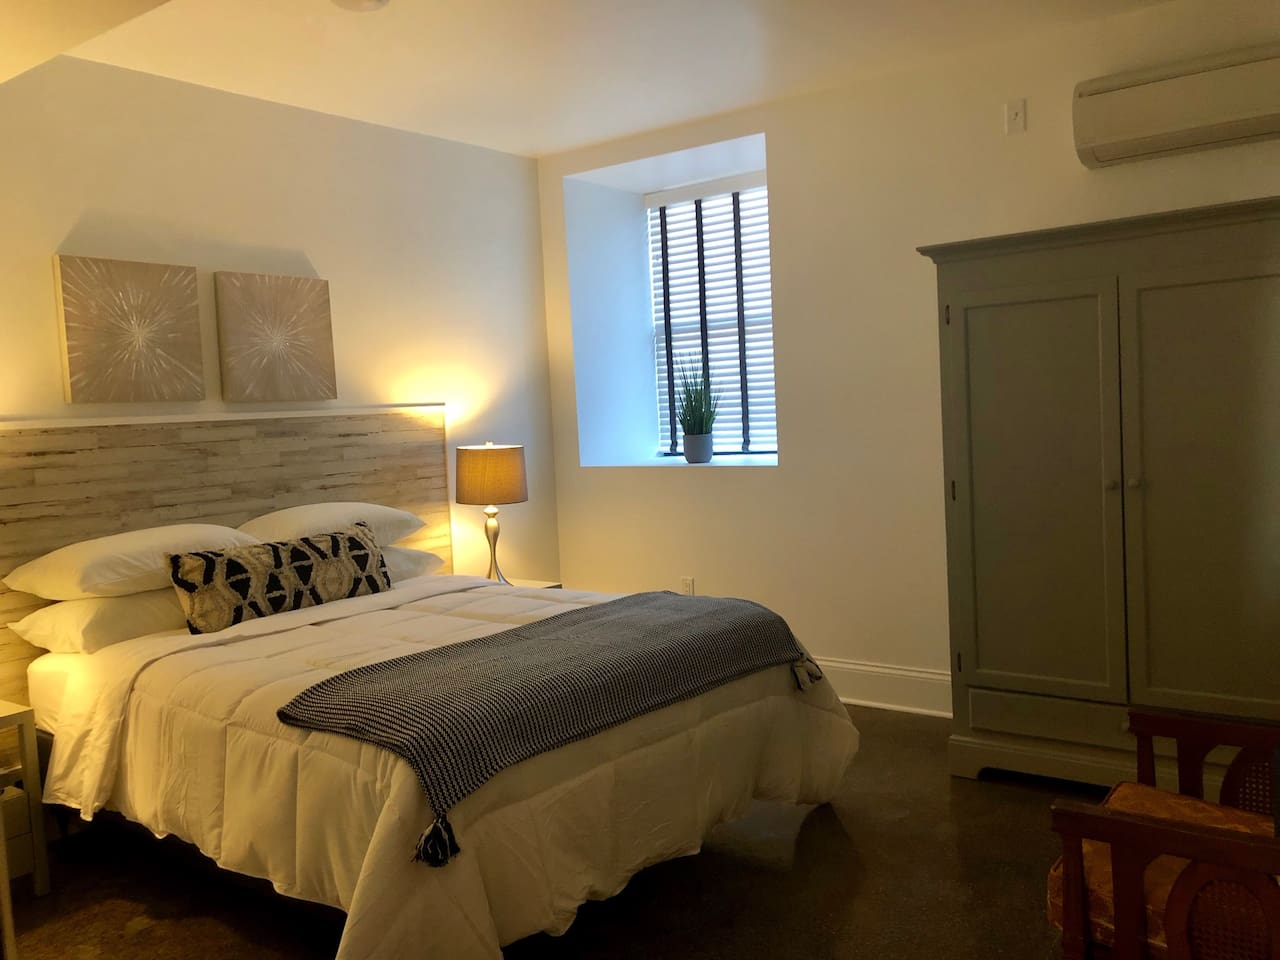 This spacious room is calming and warm. We love the subtle grey hues, and relaxing blue touches. Located conveniently close to the restrooms and sitting area.